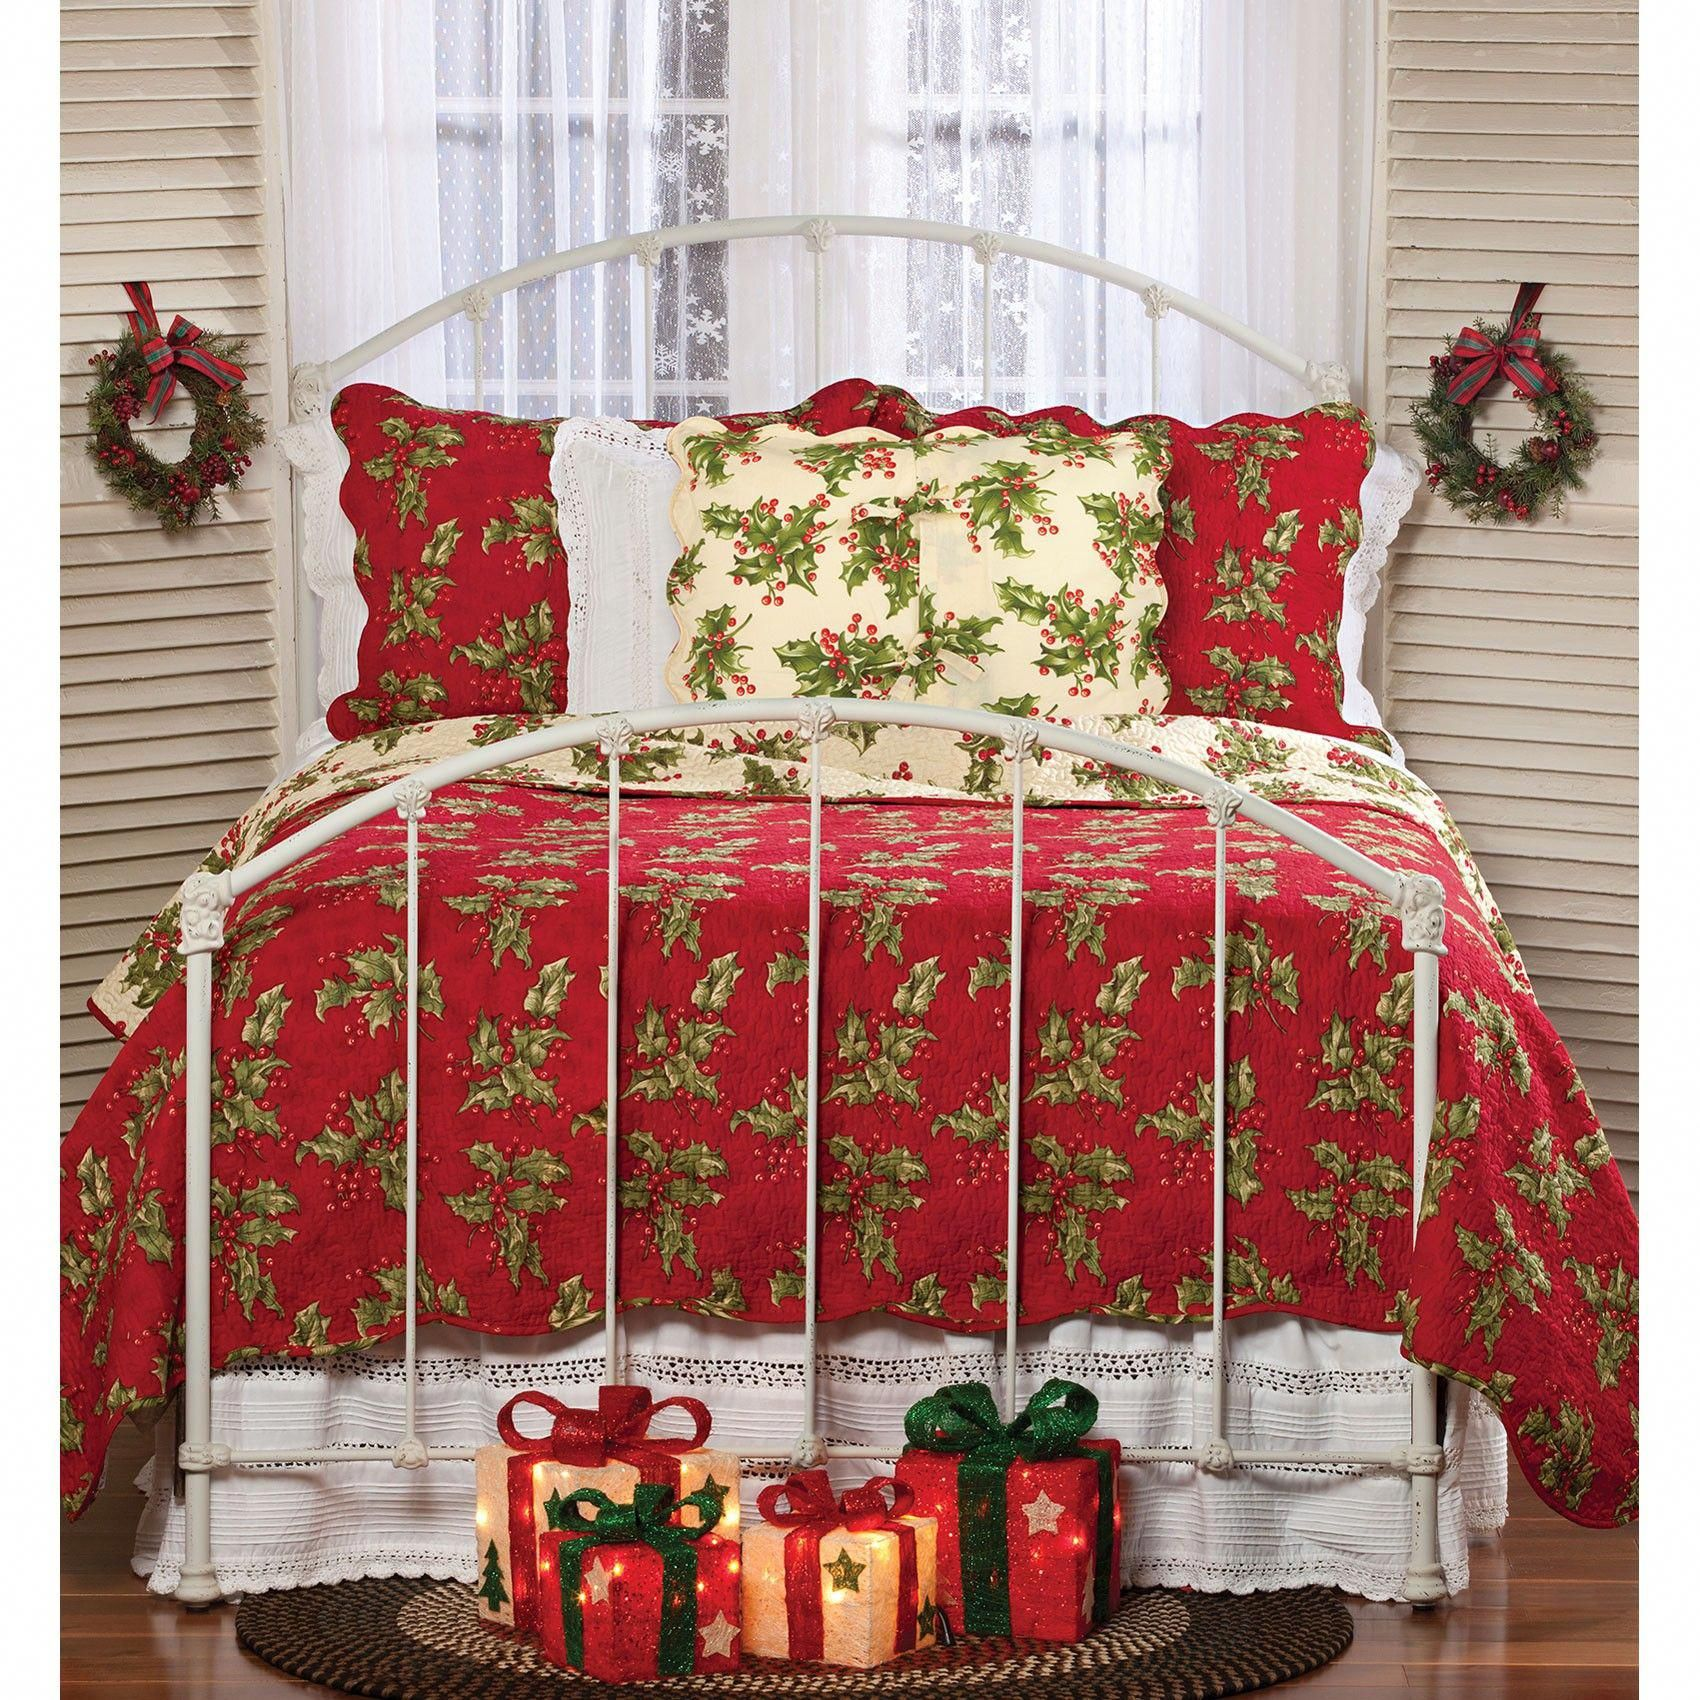 Sturbridge Yankee Workshop Christmas 2020 Holly Berry Christmas Quilt Collection | Sturbridge Yankee